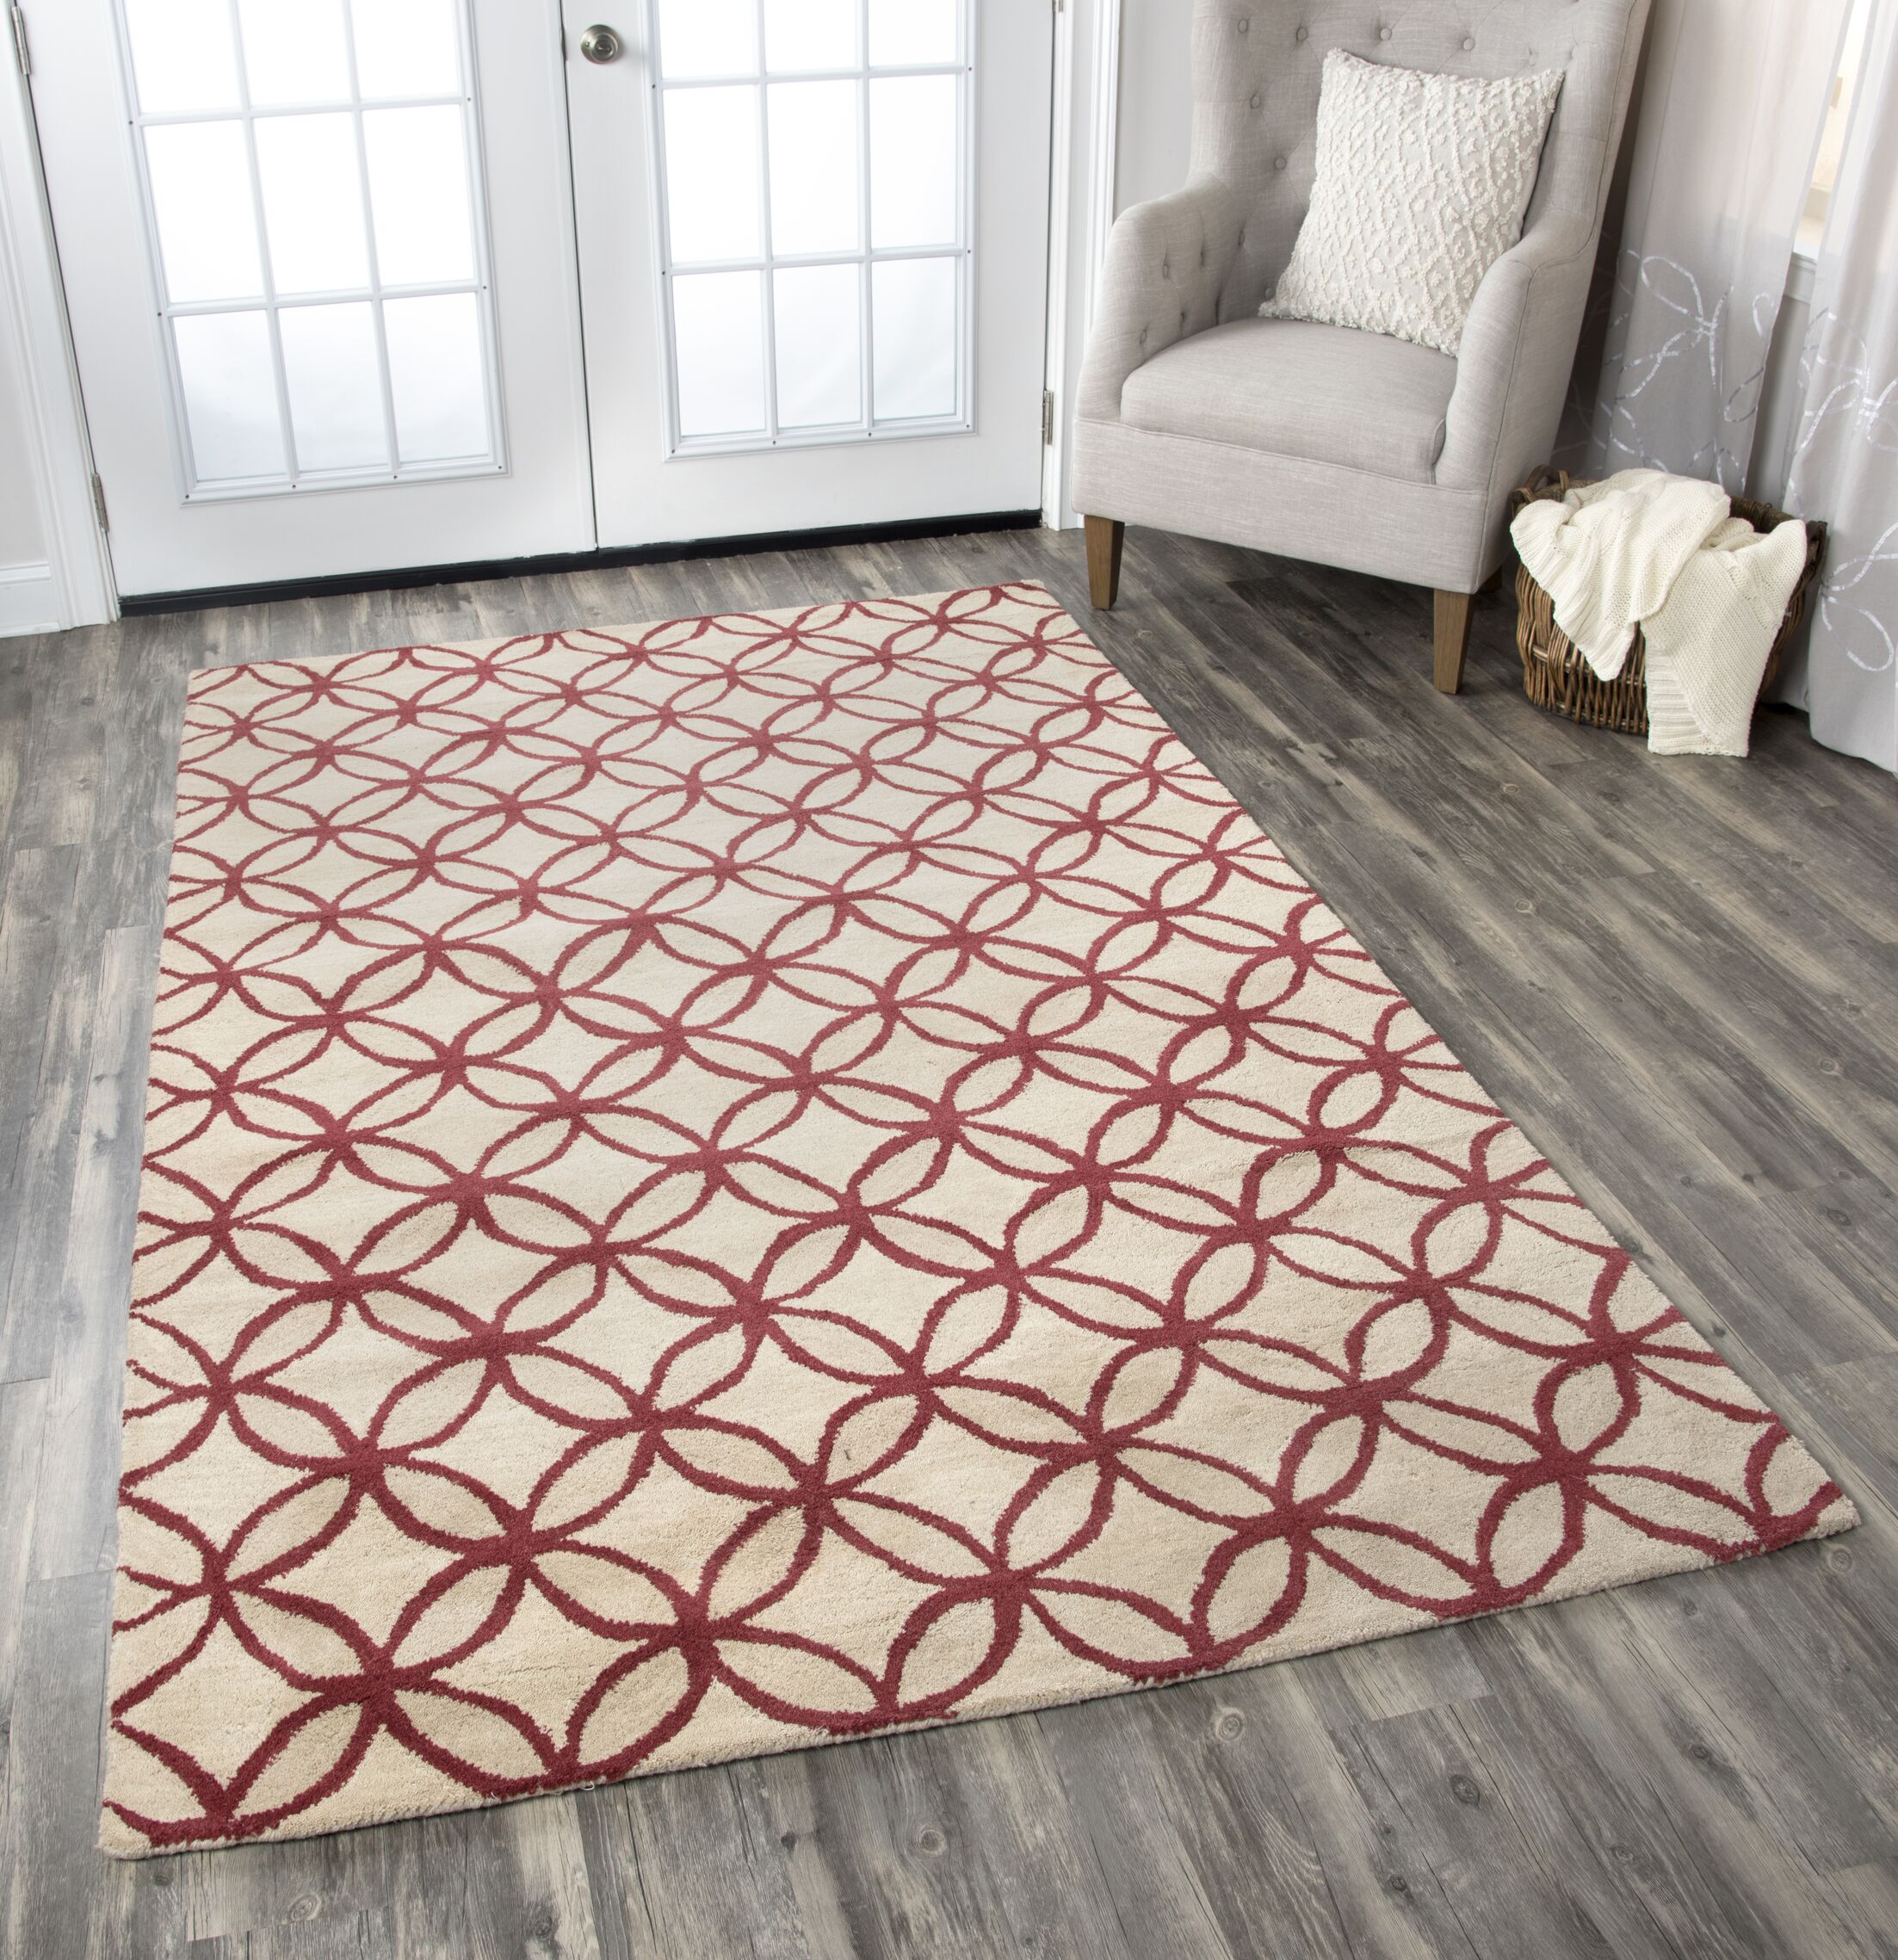 Kenzie Natural & Brick Rug Rug Size: Rectangle 8' x 10'